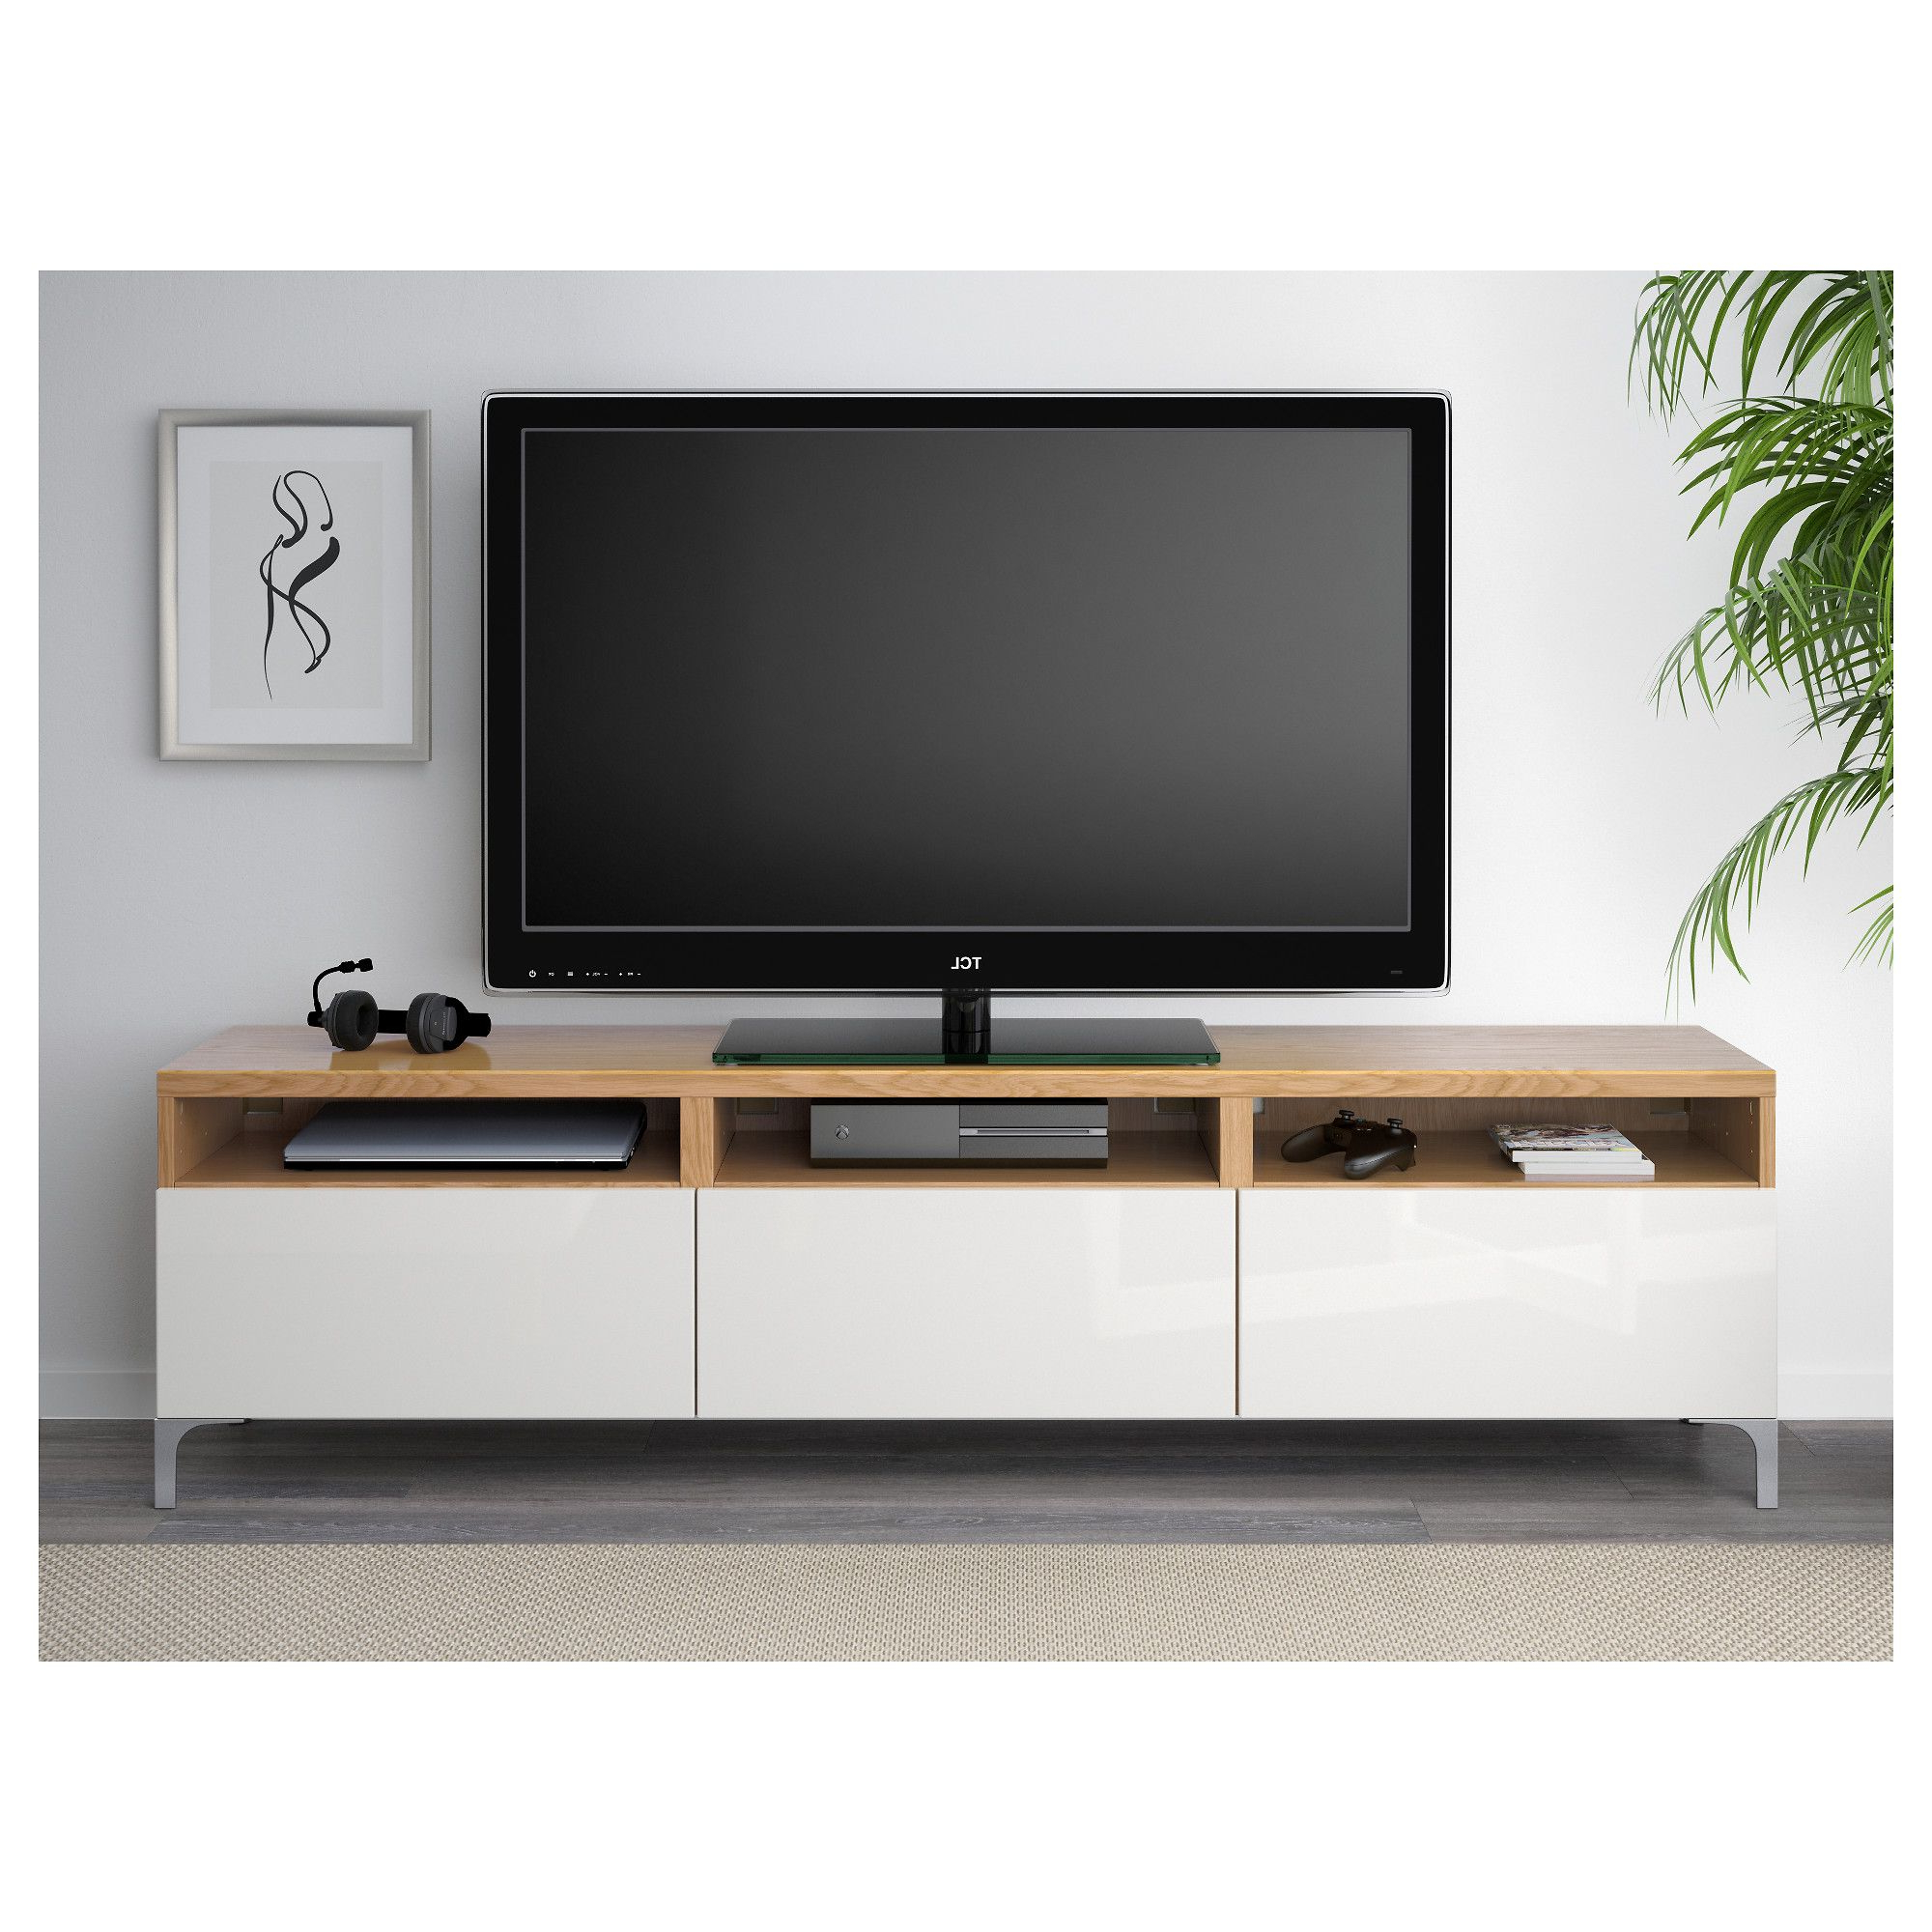 White Gloss Tv Benches With Regard To Well Known Bestå Tv Bench With Drawers Oak Effect/selsviken High Gloss/white (View 20 of 20)